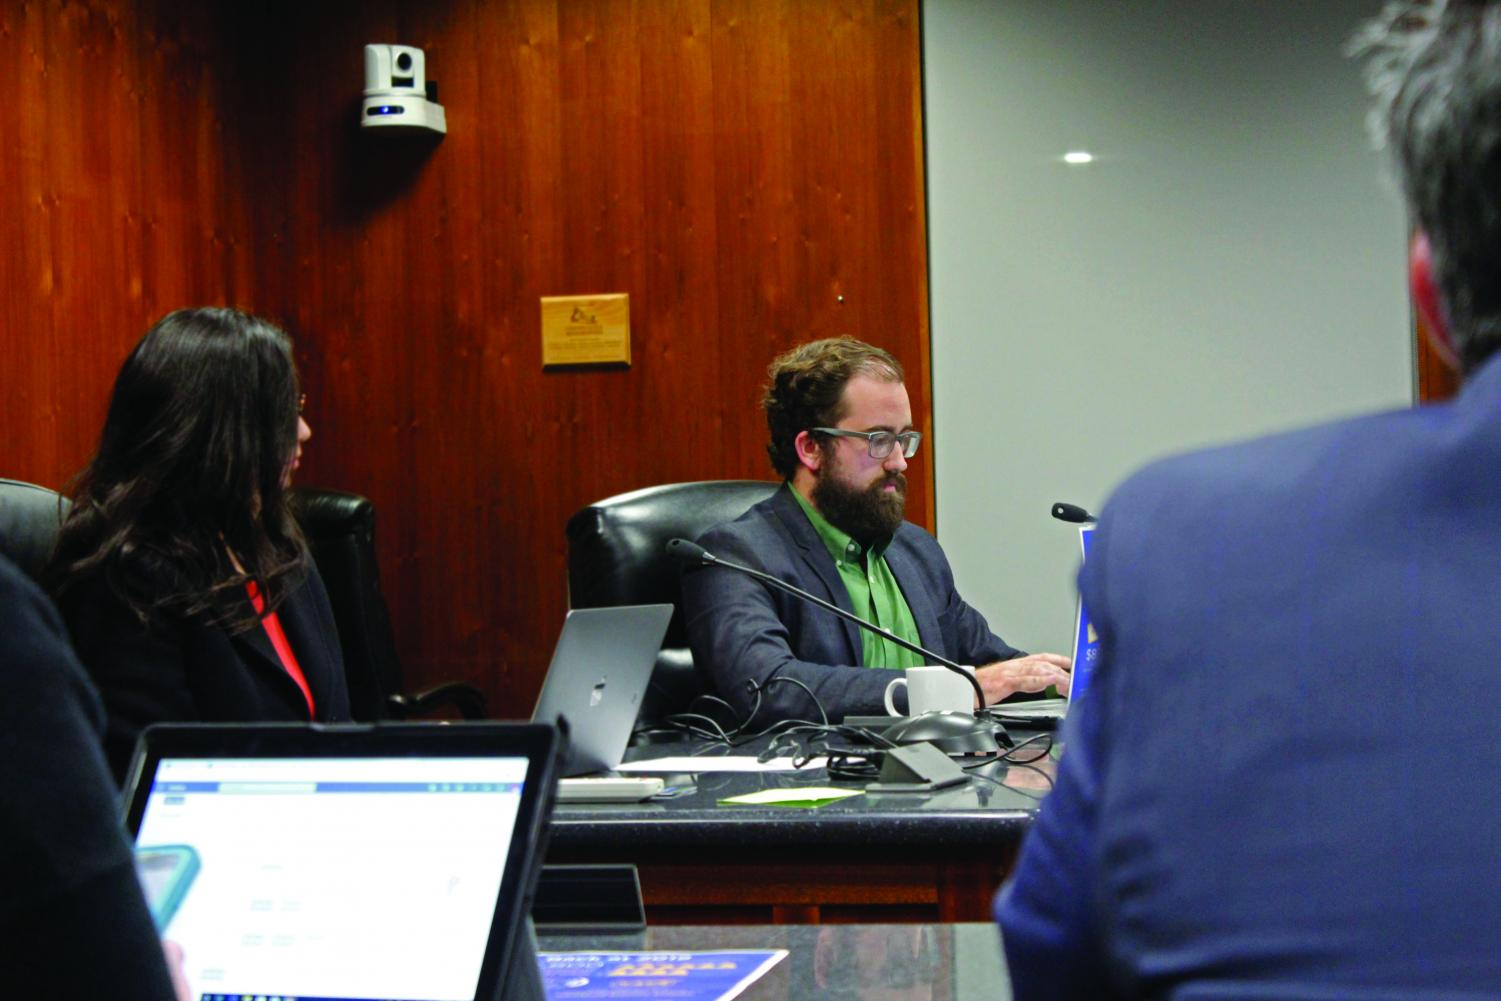 The motion to enter a Third Amendment with Follet Higher Education Group was carried on Jan. 15, 2020. This is in efforts to lower textbook costs for students on campus. Photo credit: Kianna Znika